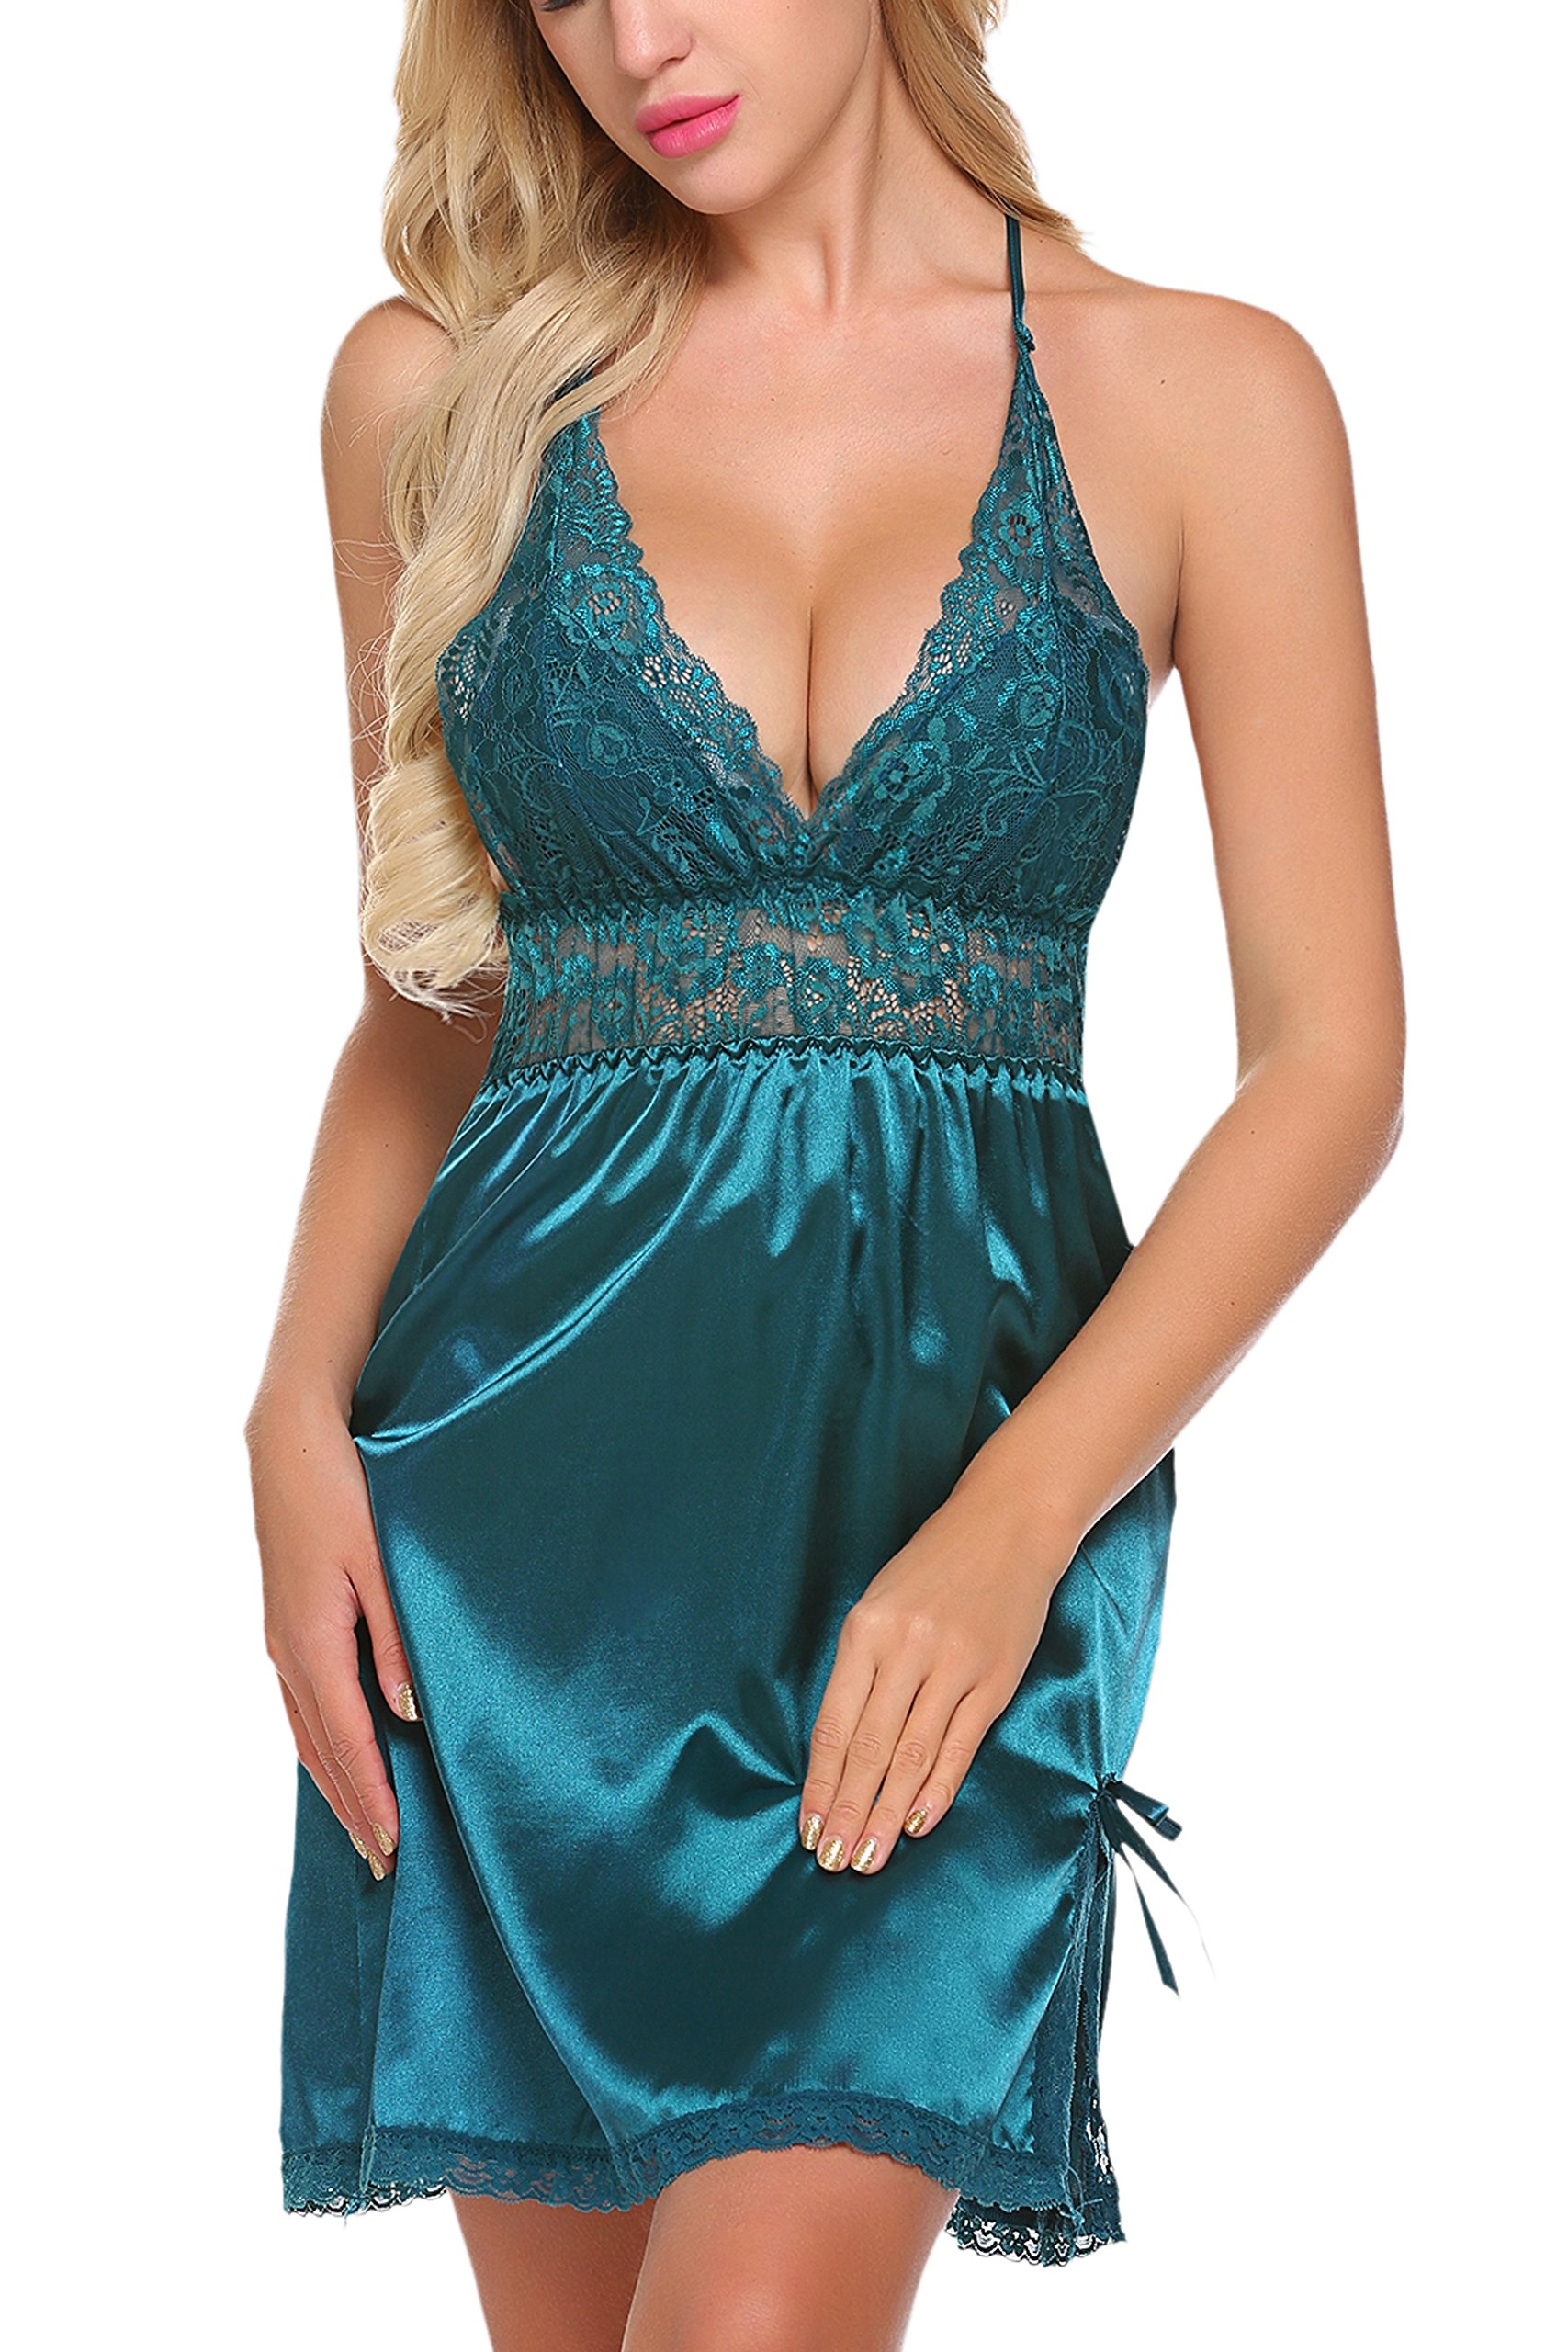 ADOME Women Lingerie Lace Babydoll Chemises V Neck Nightwear Satin Sleepwear Slips, Style 1-dark Green, Large by ADOME